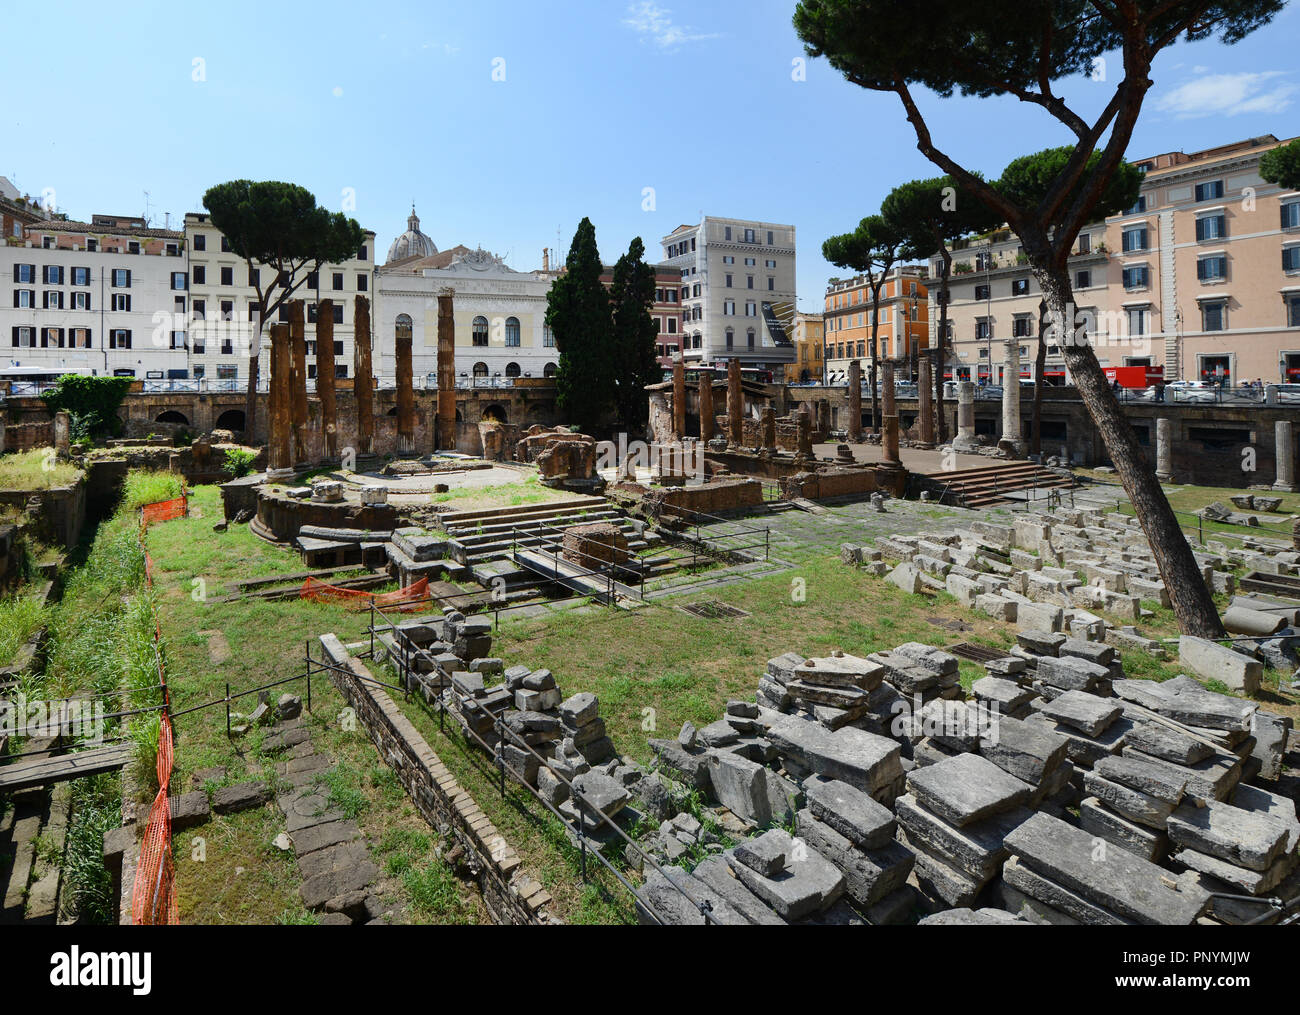 Largo di Torre Argentina is a big square in Rome with many Roman ruins. - Stock Image